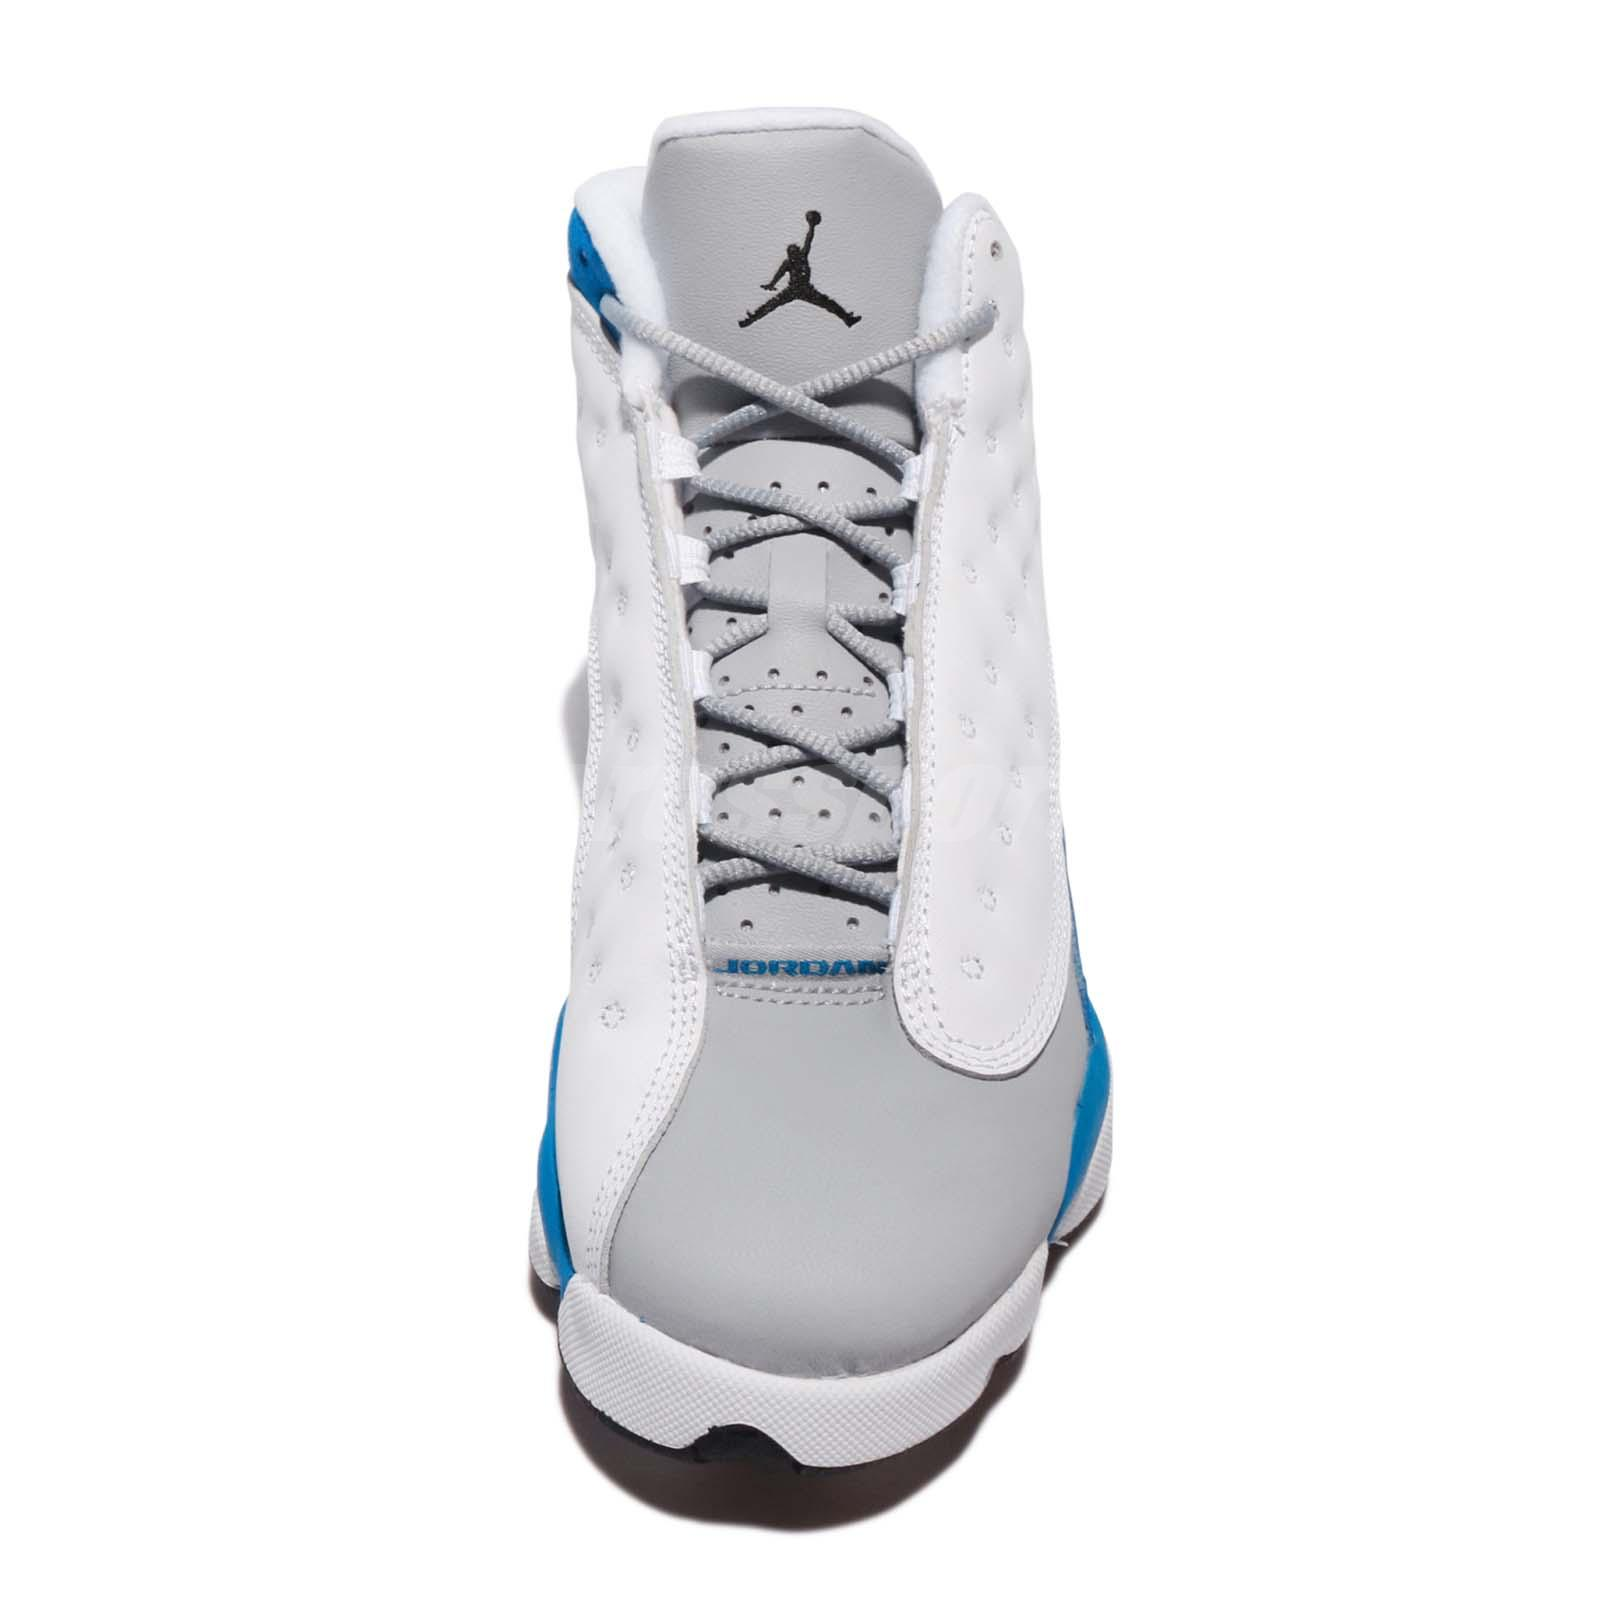 31e28e1cfaf Nike Air Jordan Retro 13 GG Right Foot With Discoloration Kid Youth ...